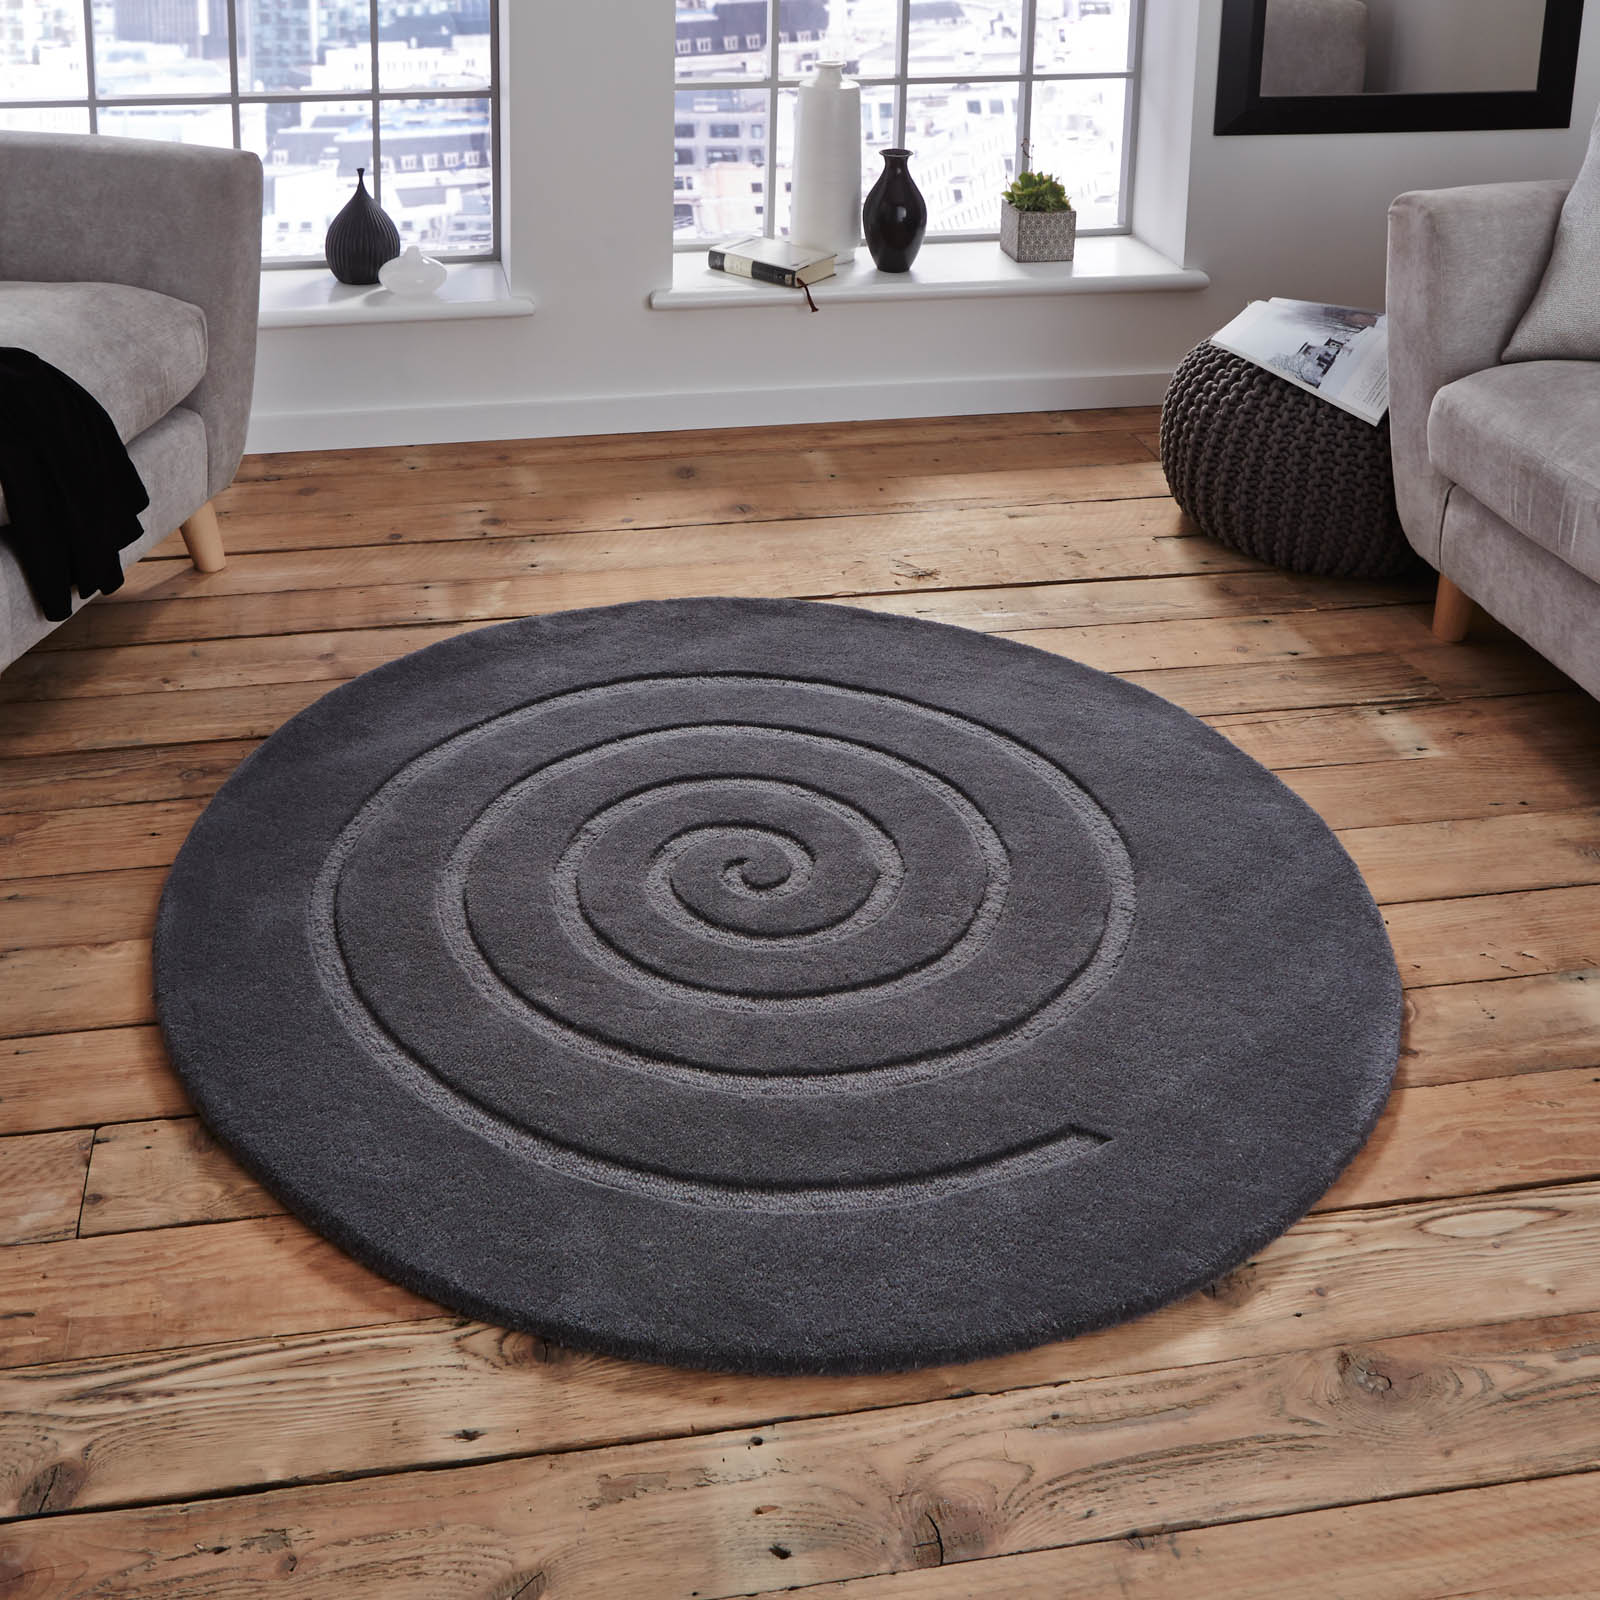 Spiral Circular Rug for student bedroom rugs